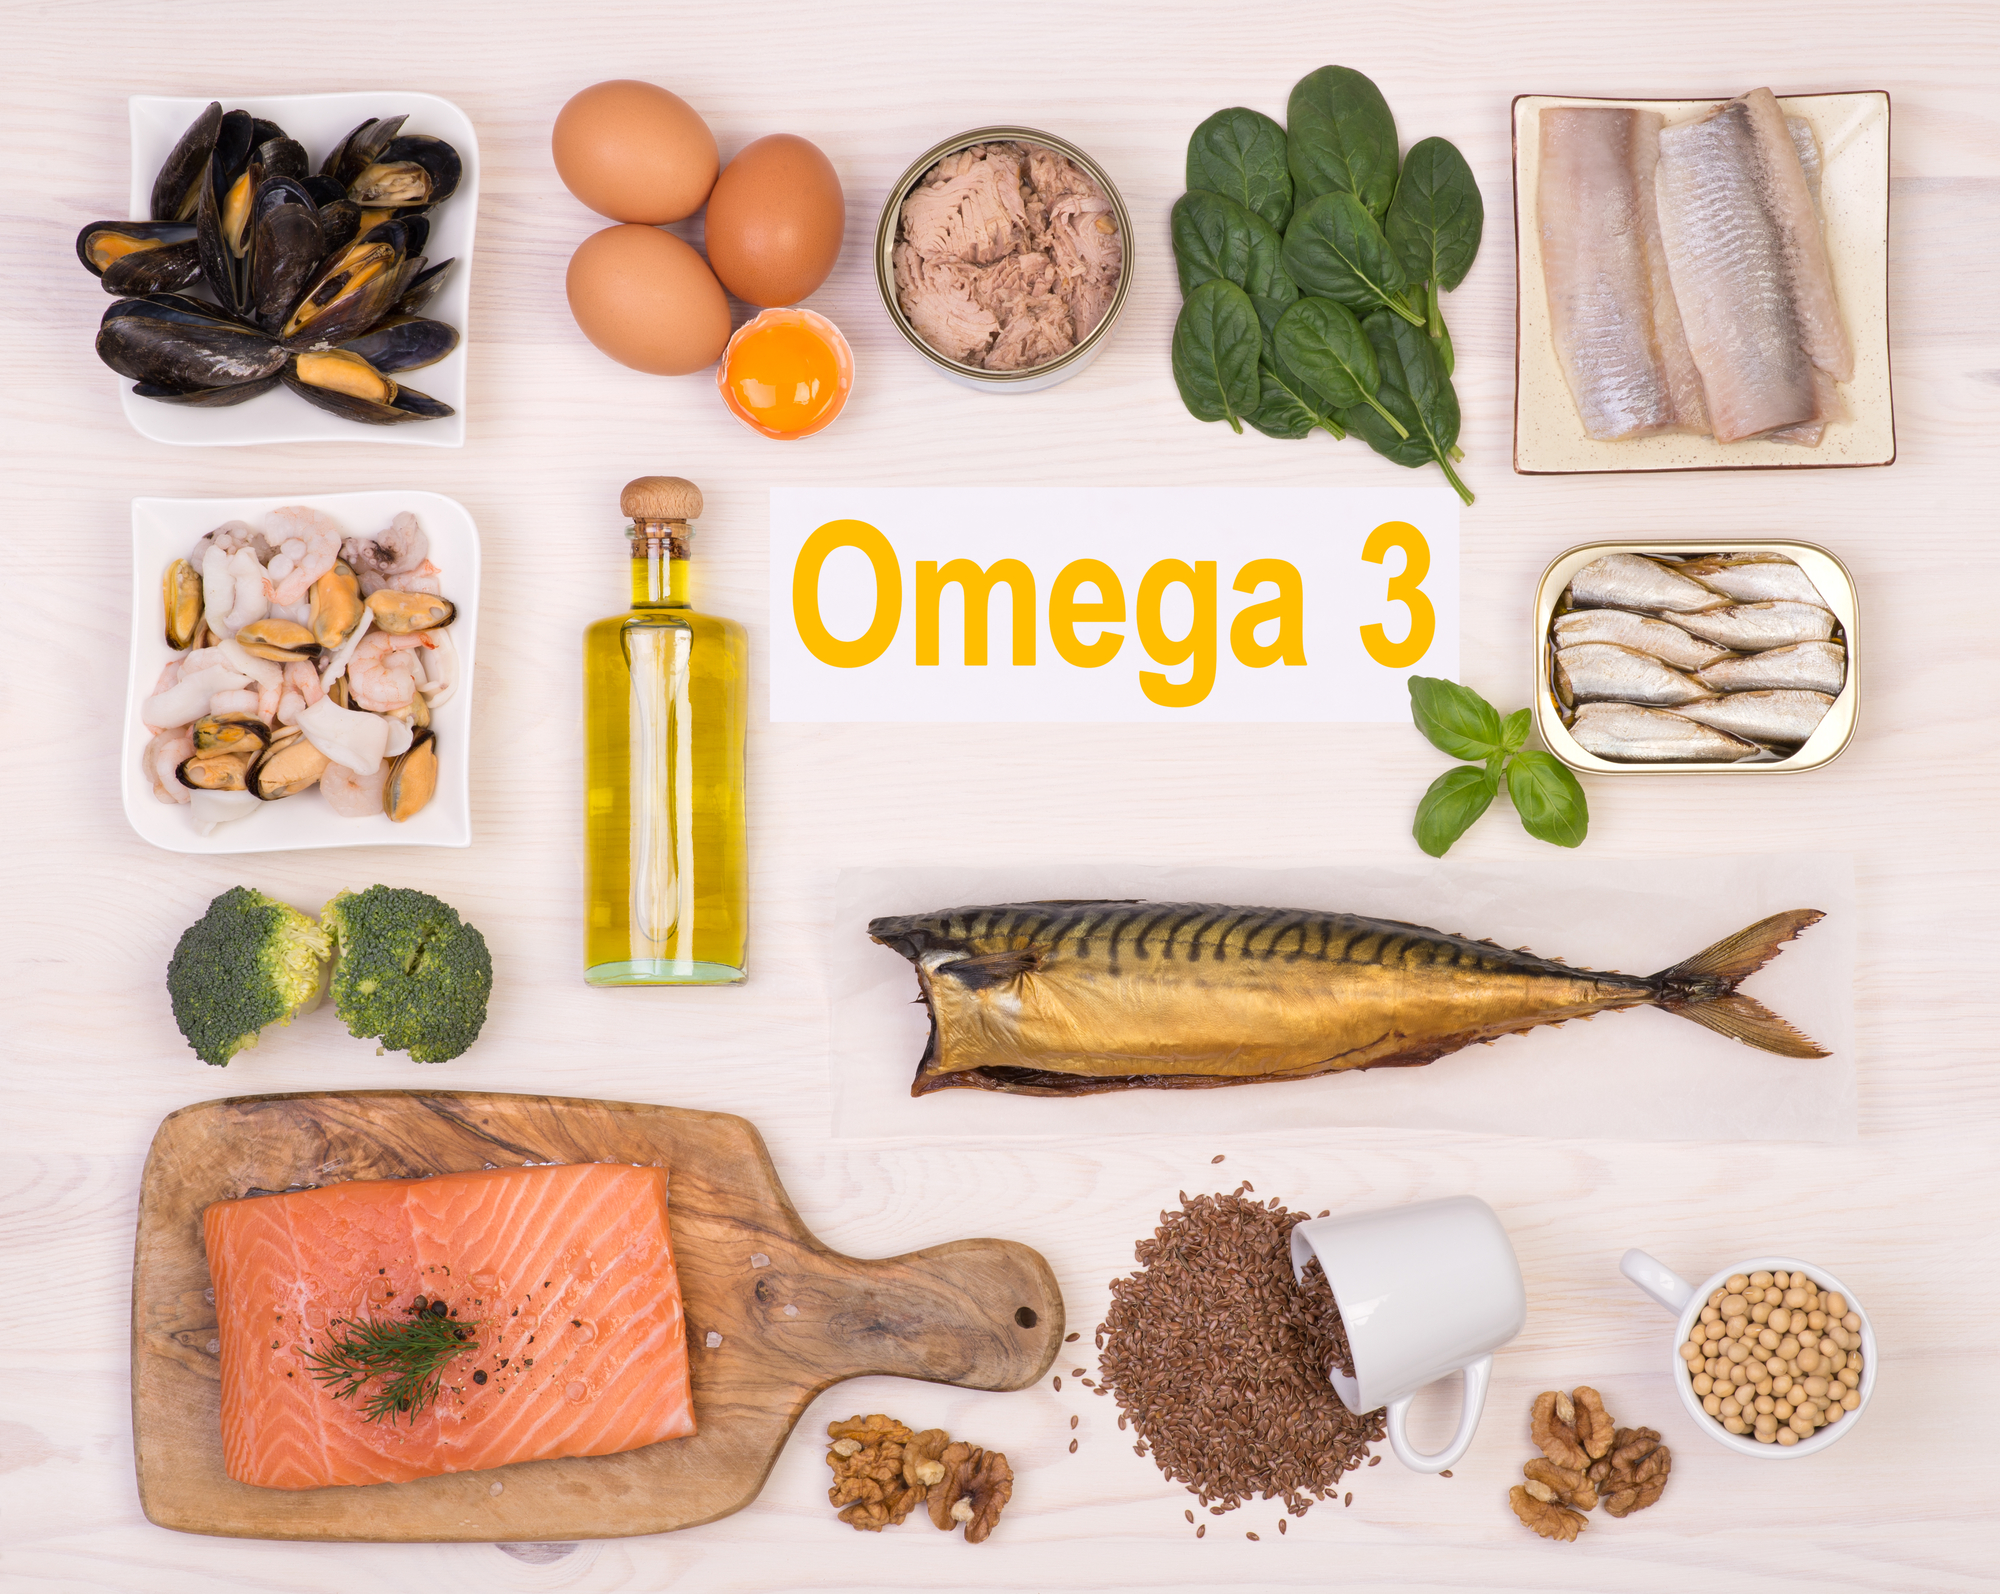 FOOD AS  MEDICINE: Omega 3 fatty acids